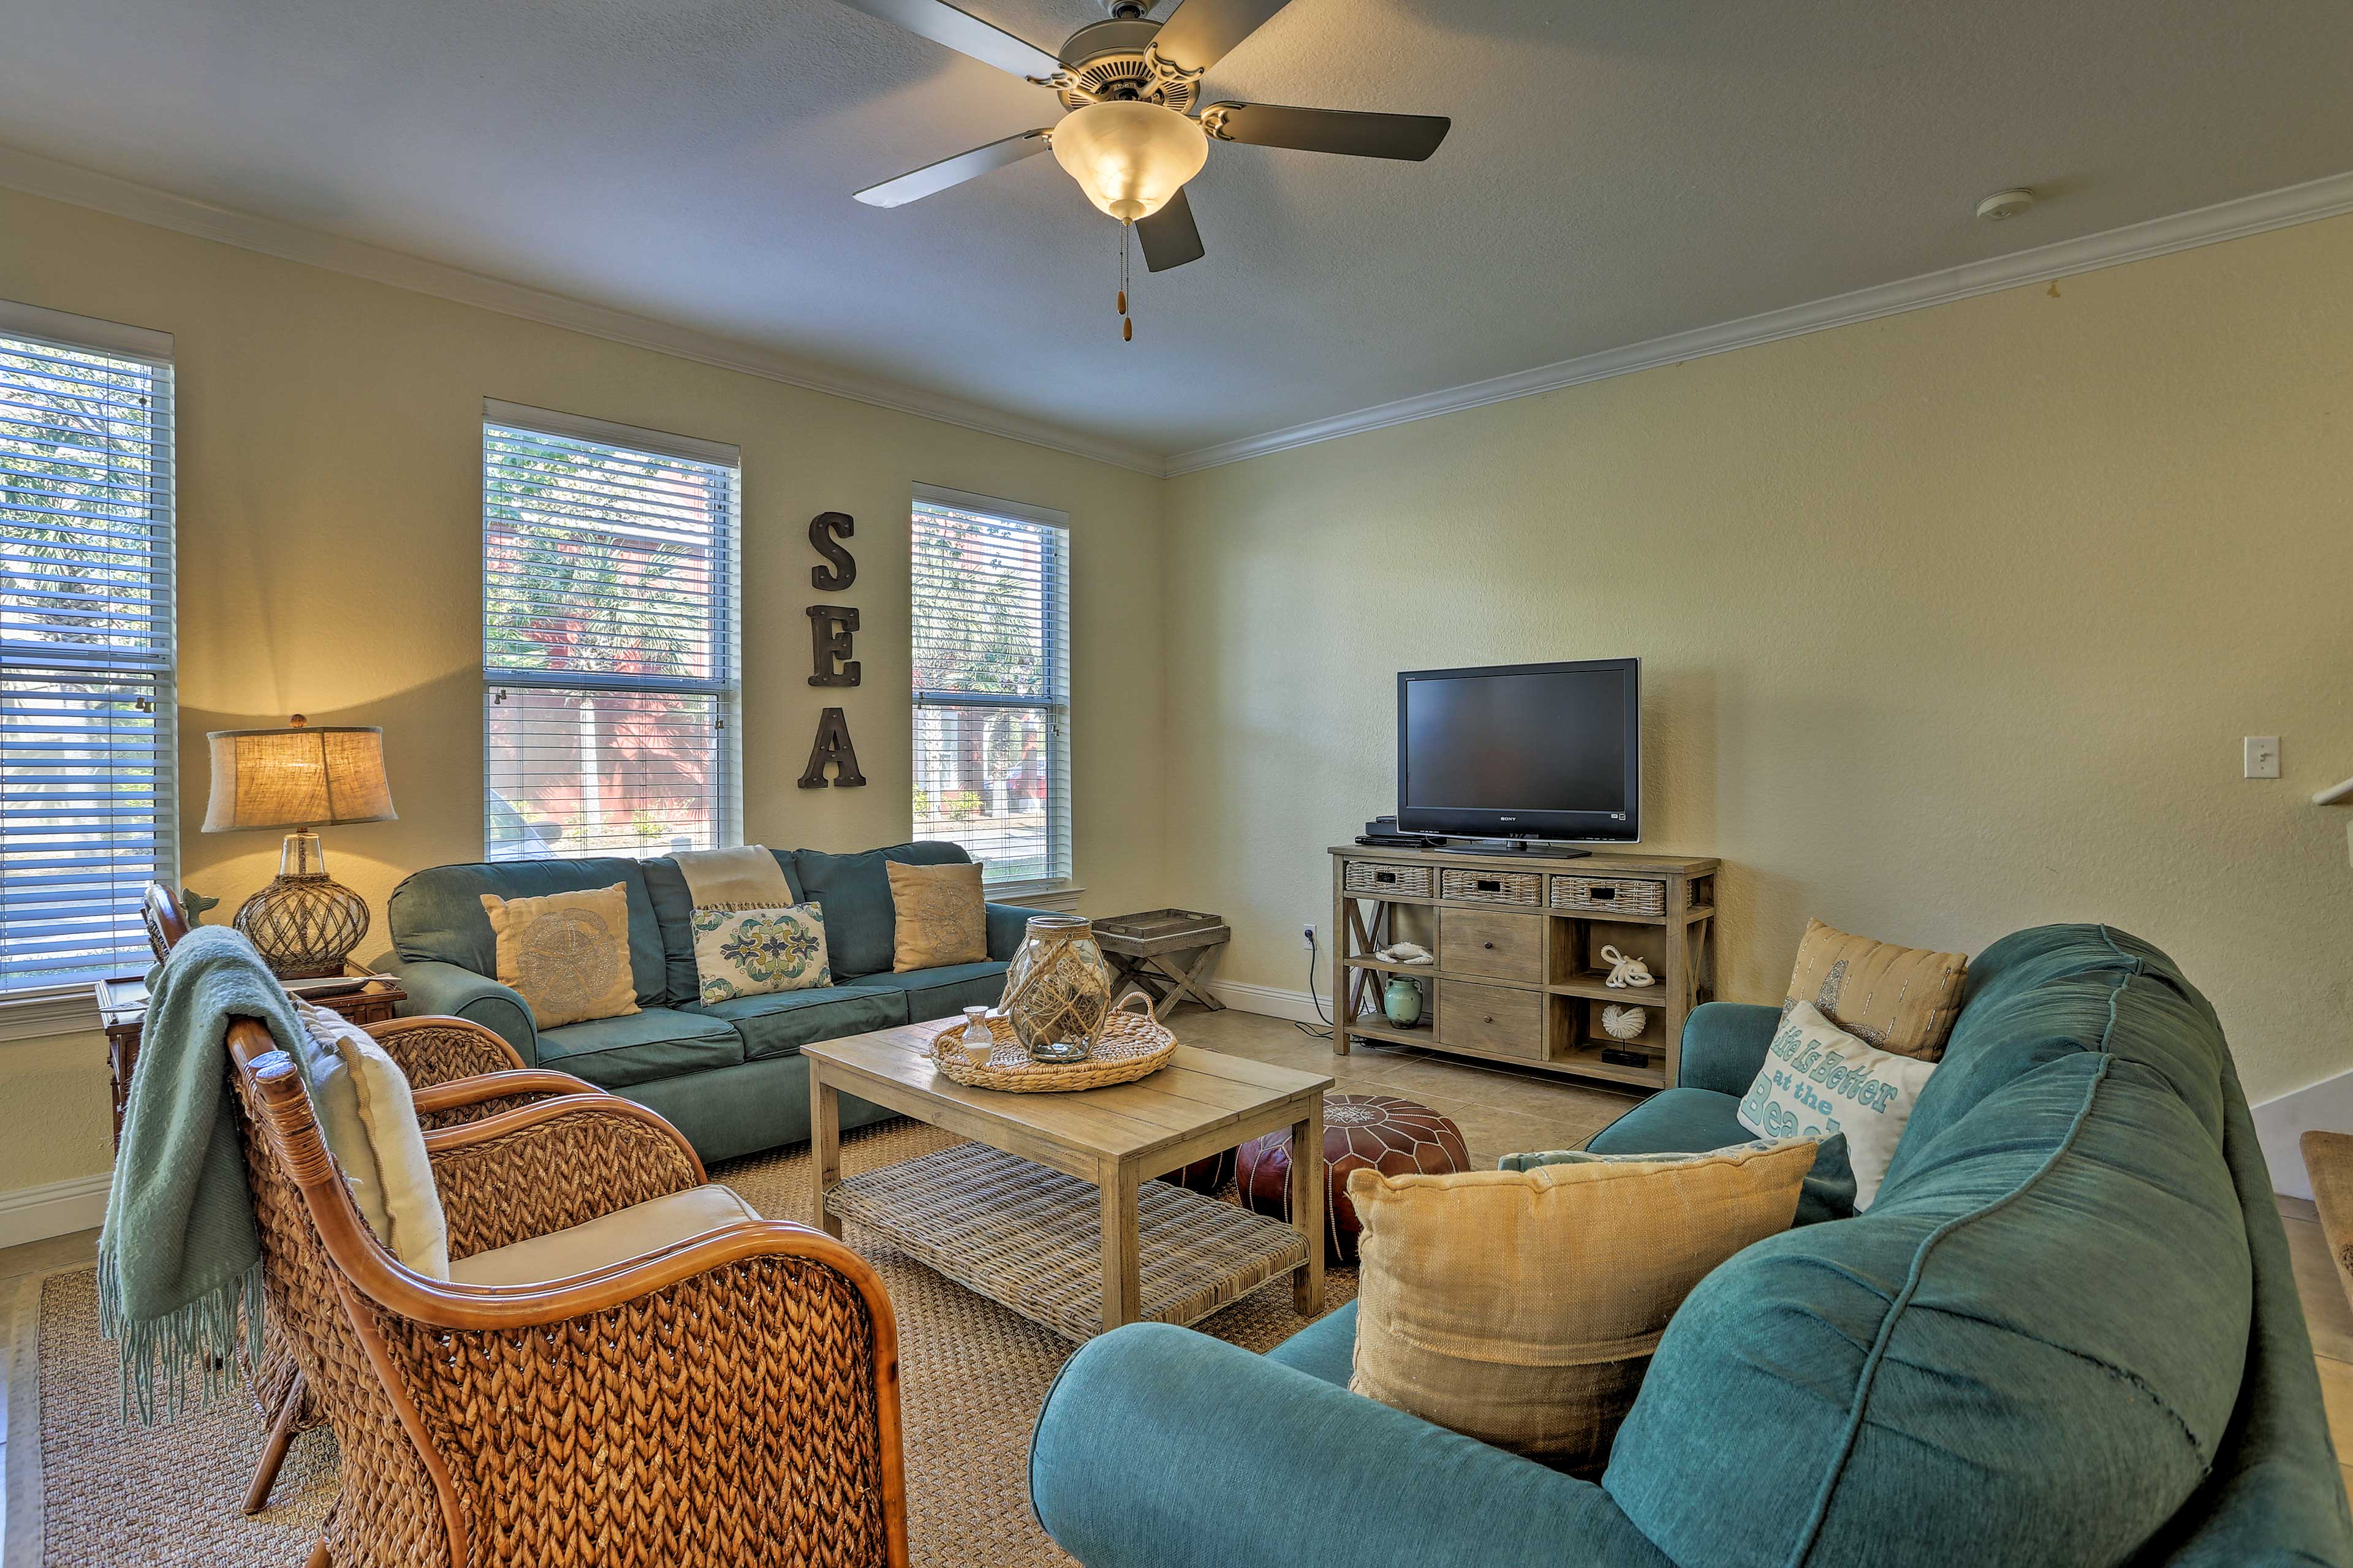 The living room offers ample seating and a flat-screen cable TV.